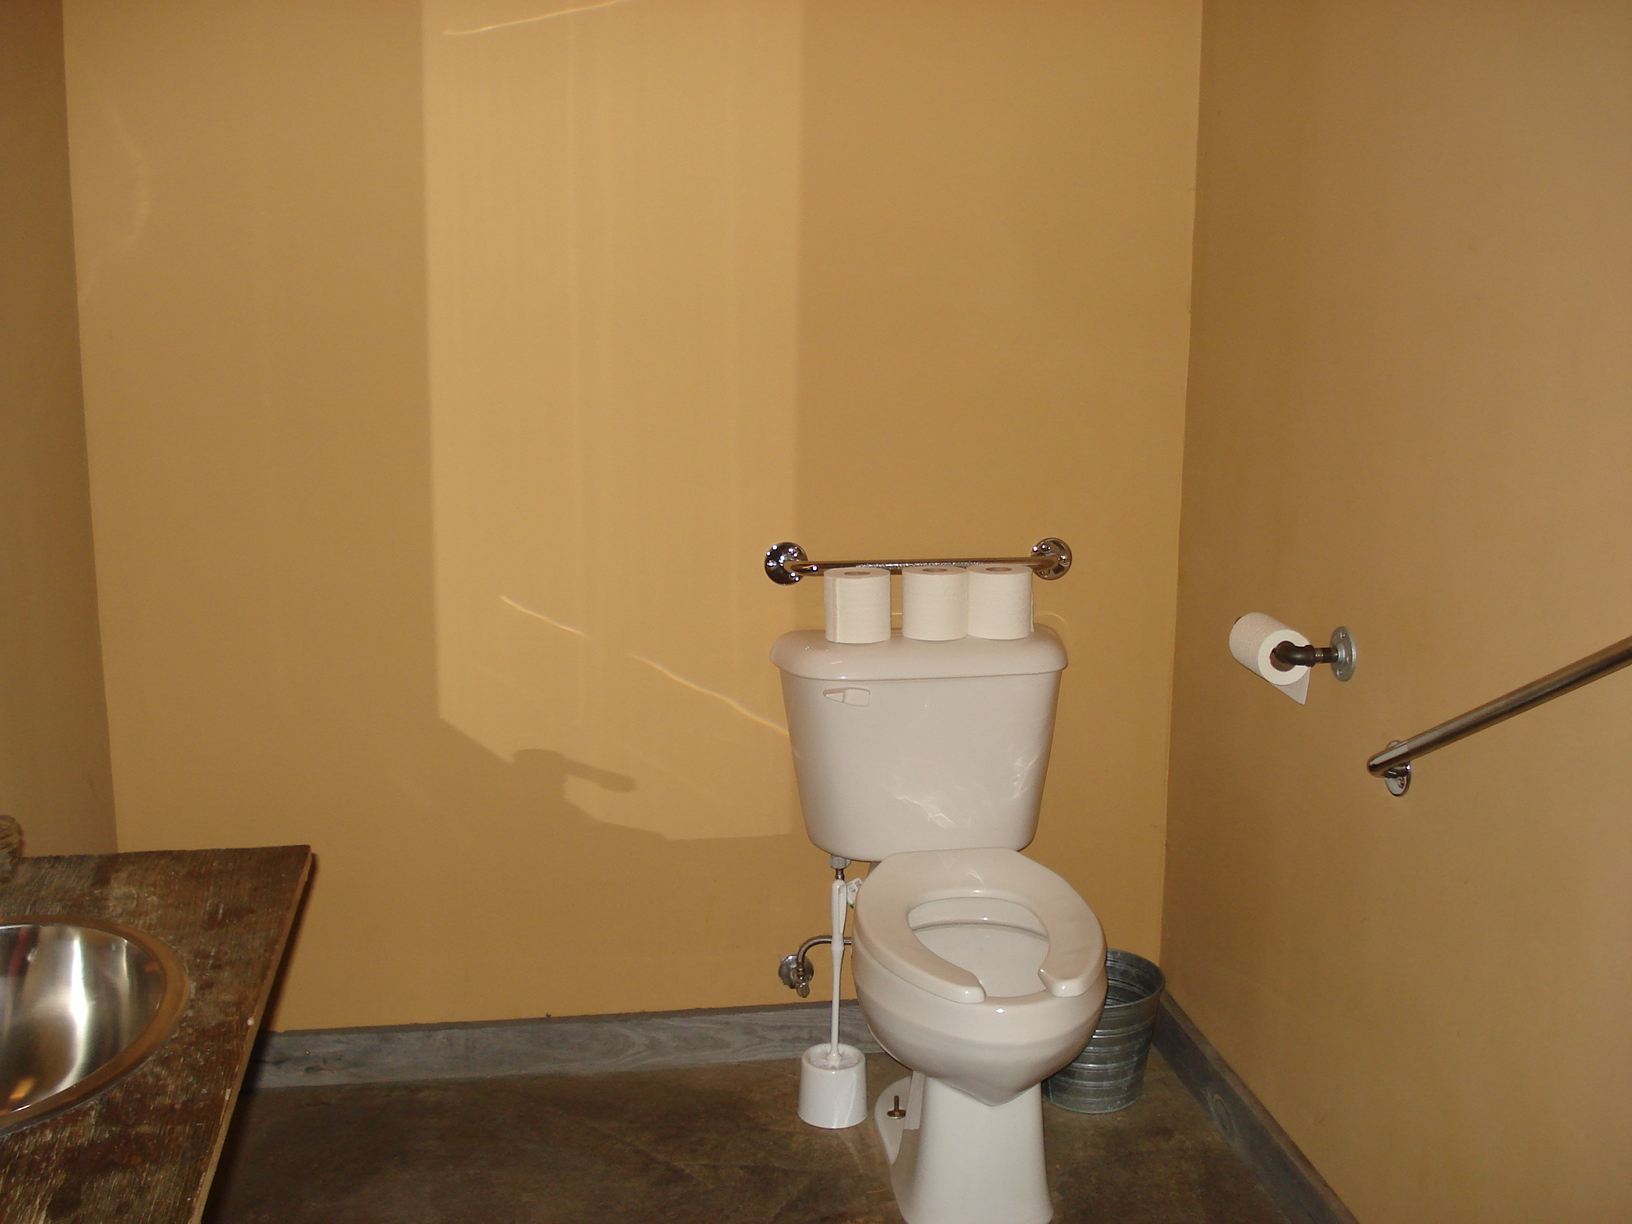 Picture of accessible washroom. Grab bars around toilet.